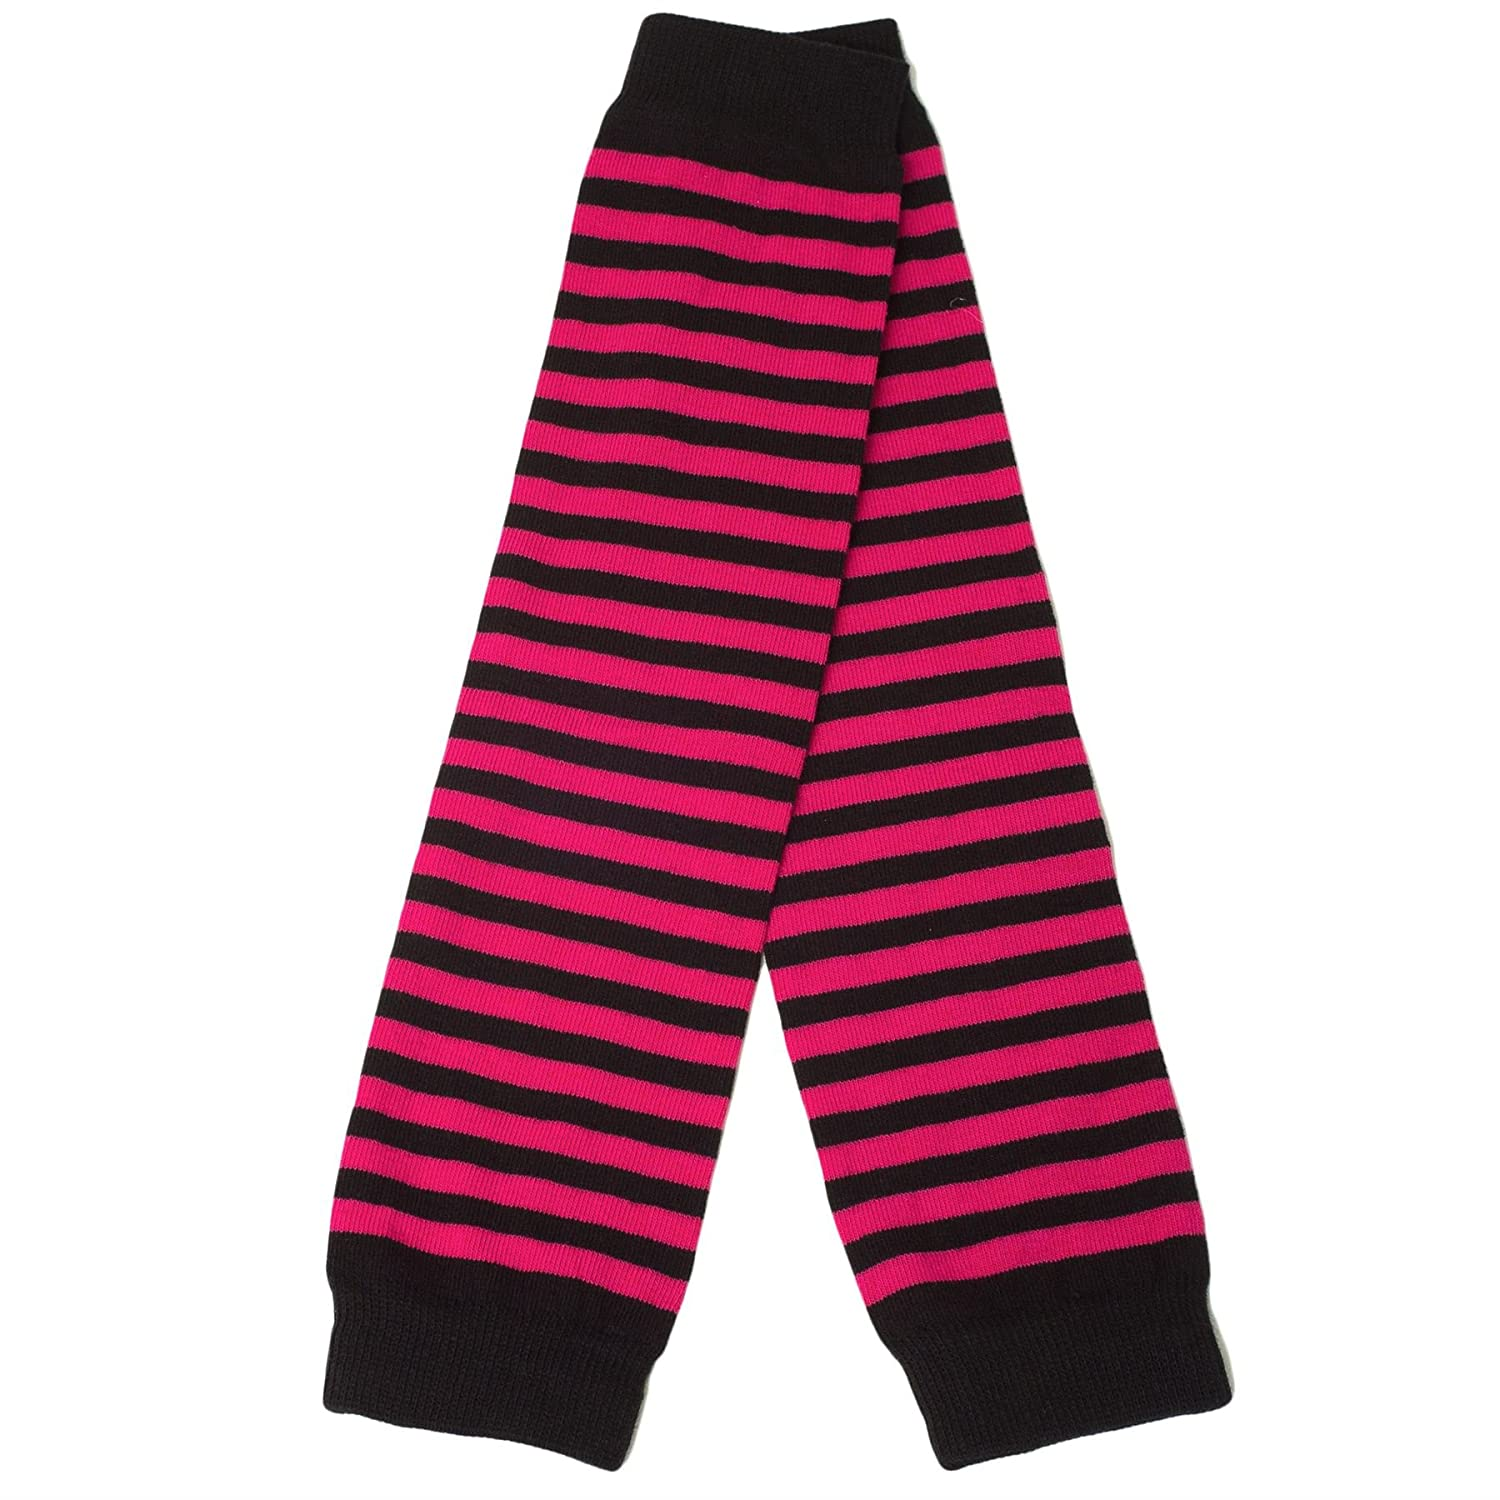 Ladies Arm Warmers/Gloves Thin Stripes - Long & Fingerless - Fuchsia Pink - Black d2d Socks 7930